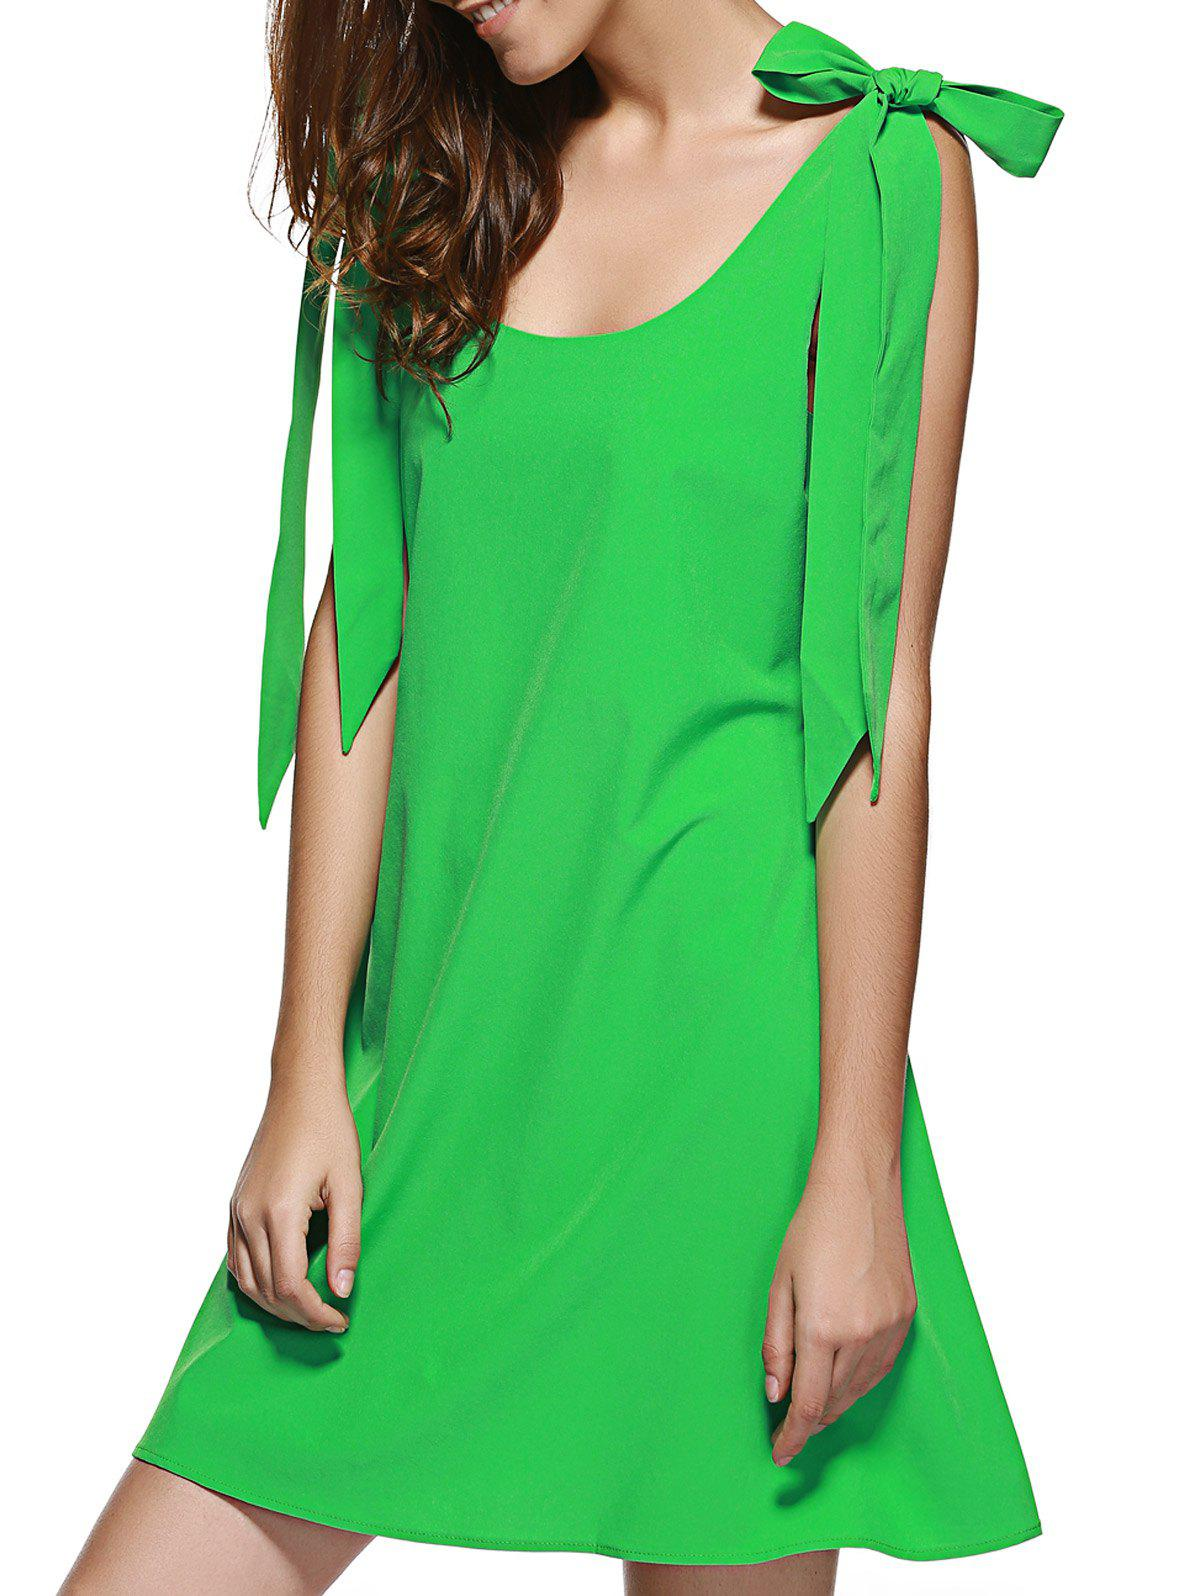 Bowtie Backless U Neck A Line Dress - GREEN L